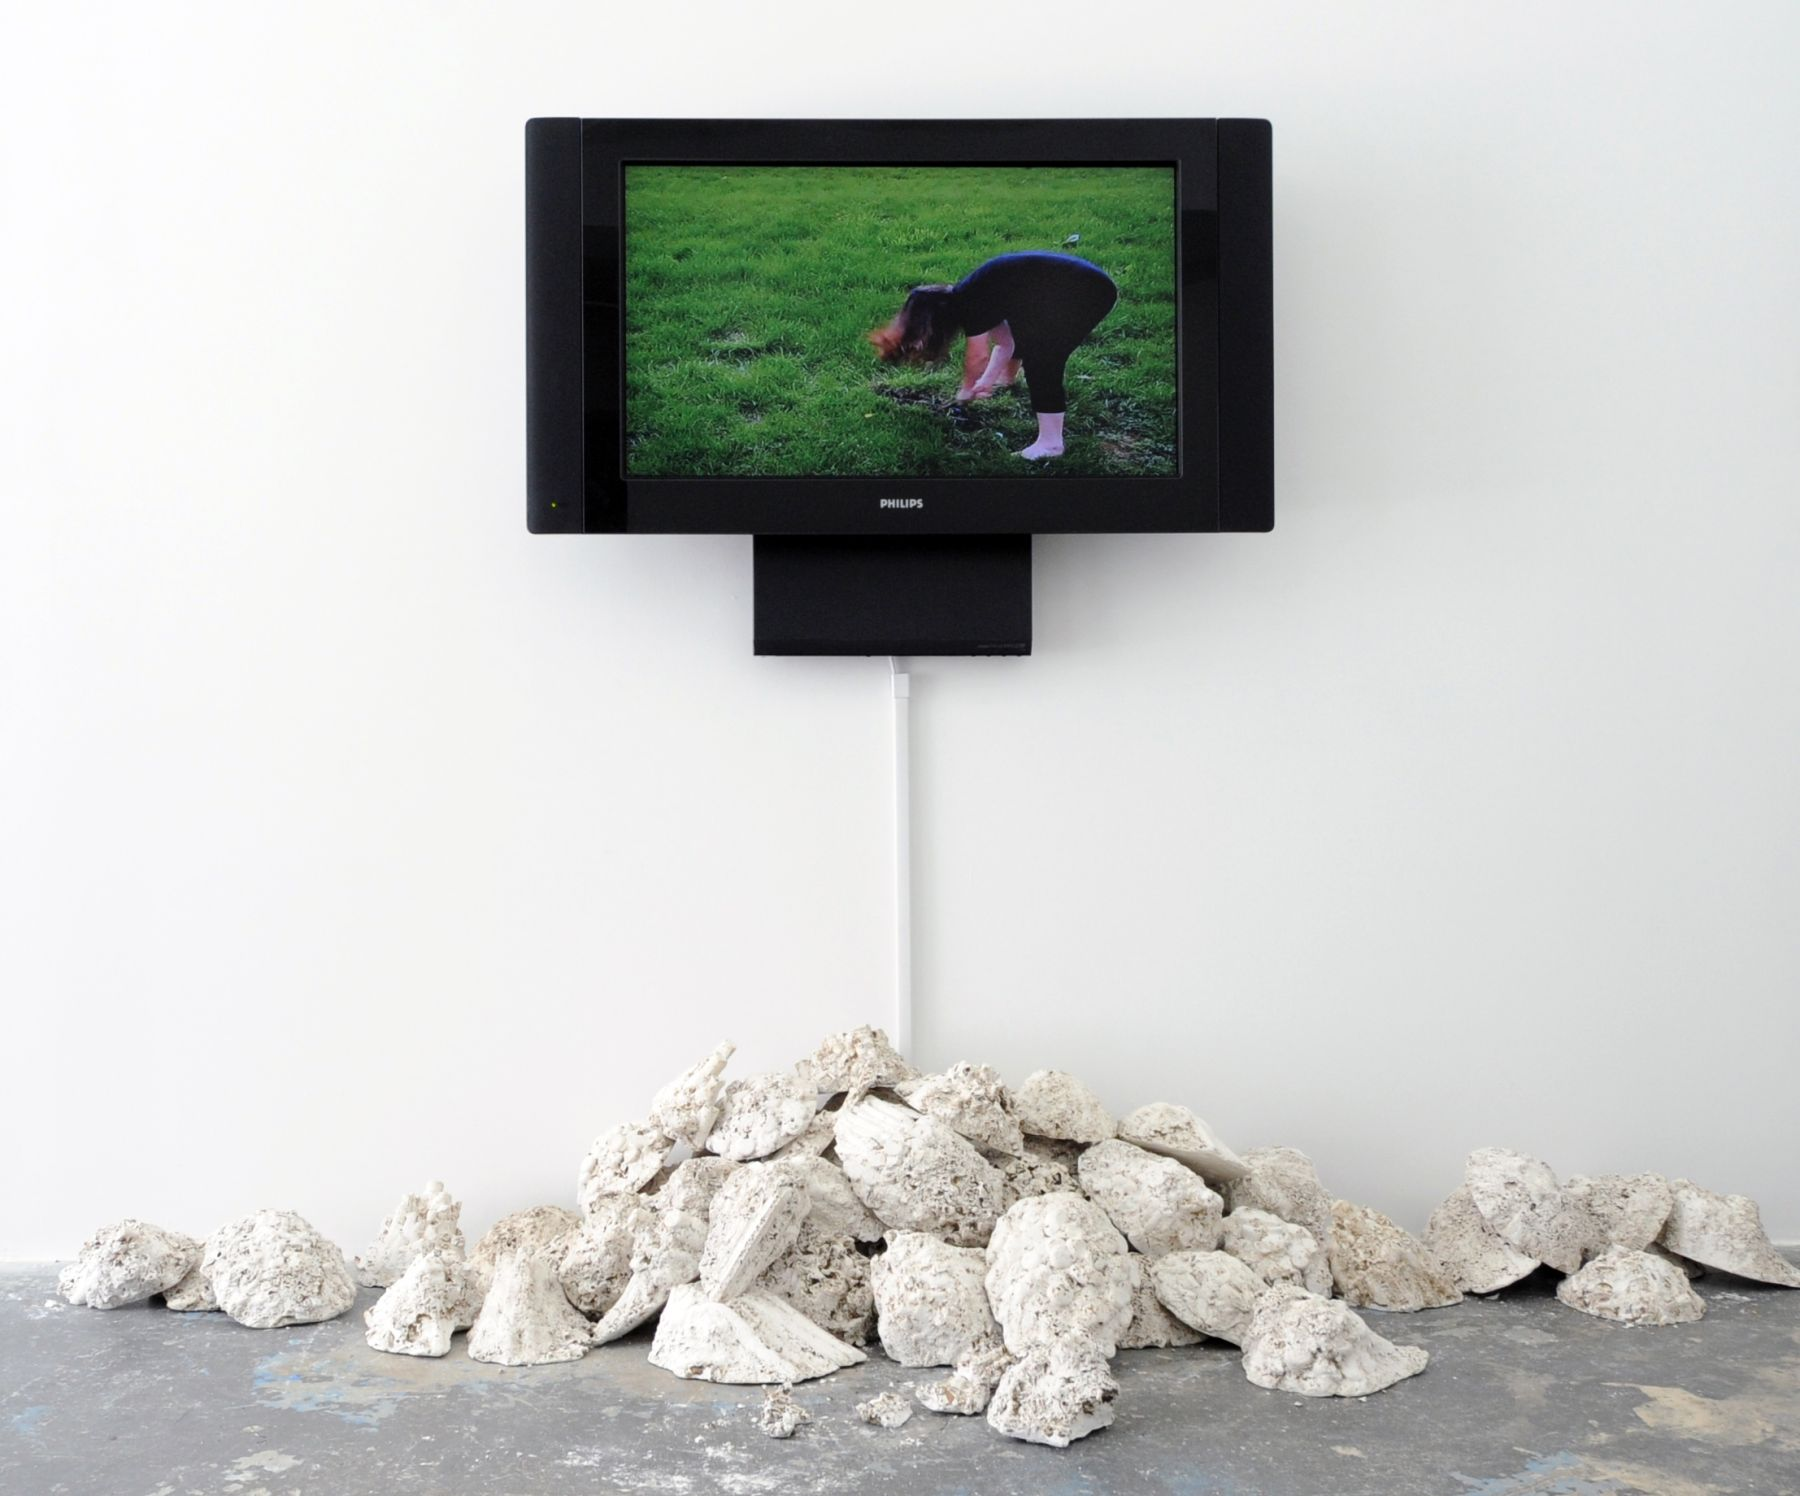 CAROLINE COVINGTON Beatings: Baltimore 2011, performance and installation with cast plaster, video, dirt, 84 x 120 x 36 inches. Installation view: ACADEMY 2011, Conner Contemporary Art.